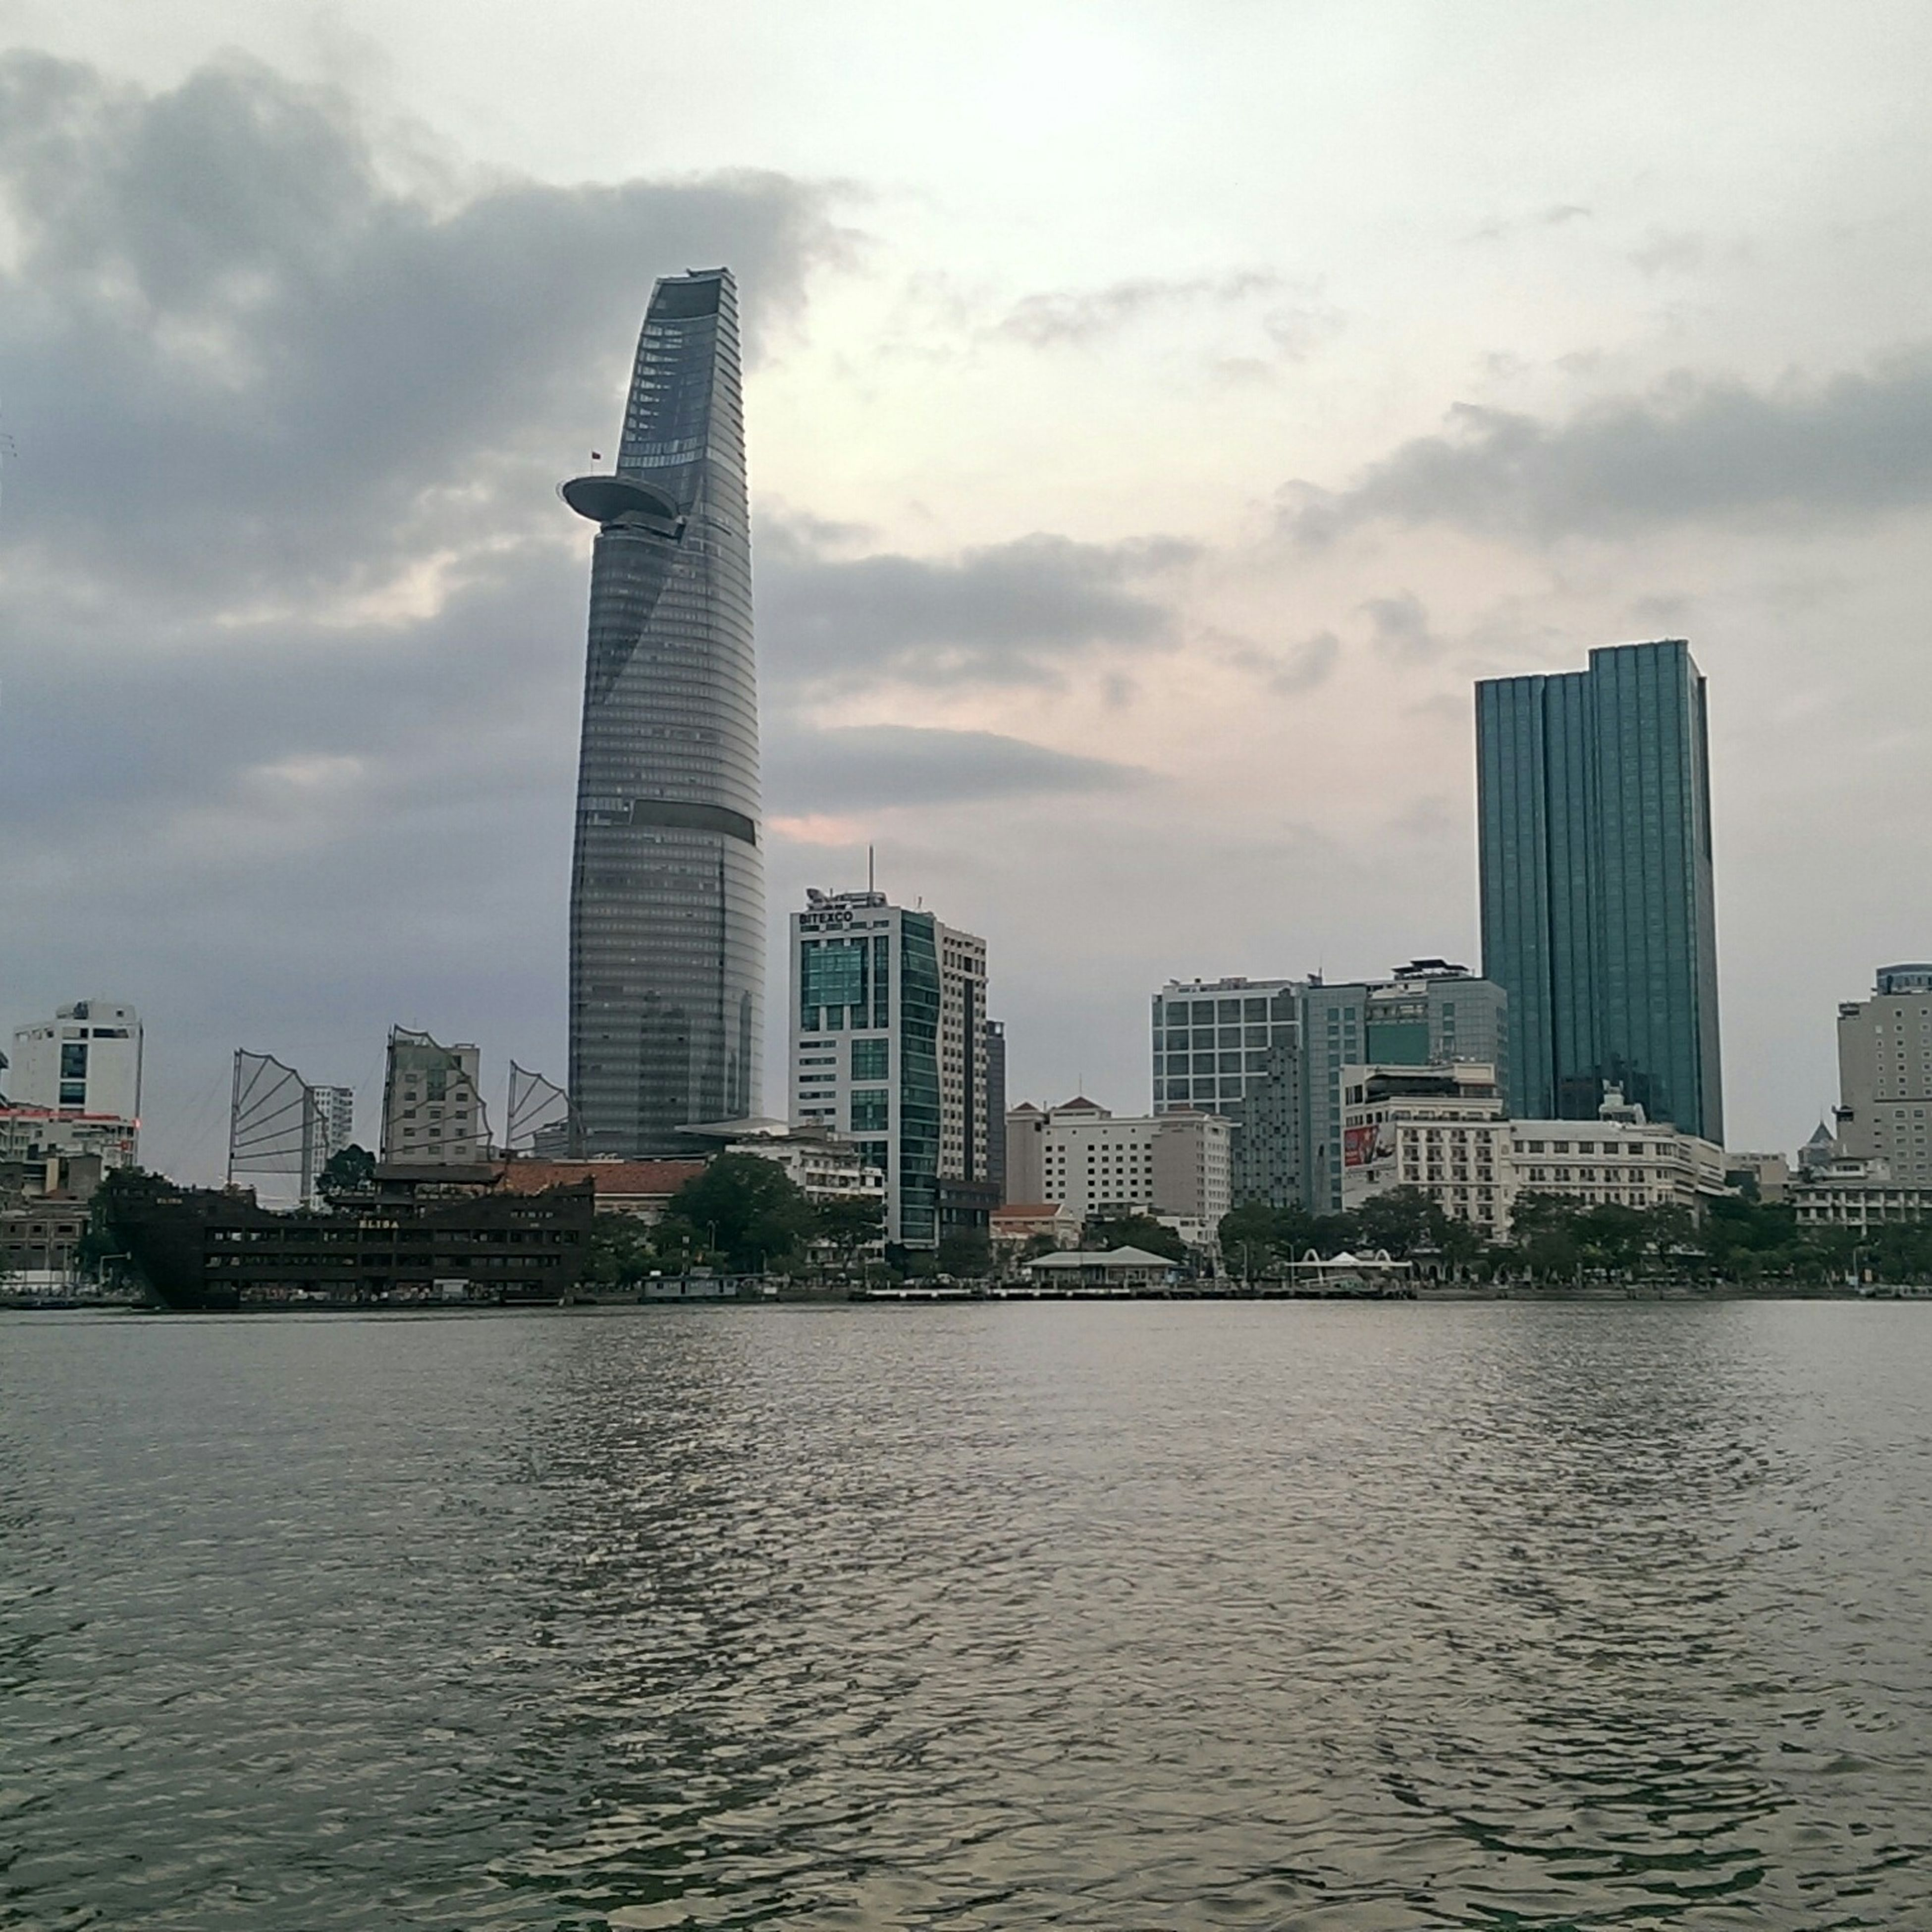 building exterior, architecture, city, built structure, water, skyscraper, waterfront, sky, urban skyline, tall - high, cityscape, office building, modern, tower, river, cloud - sky, sea, financial district, skyline, city life